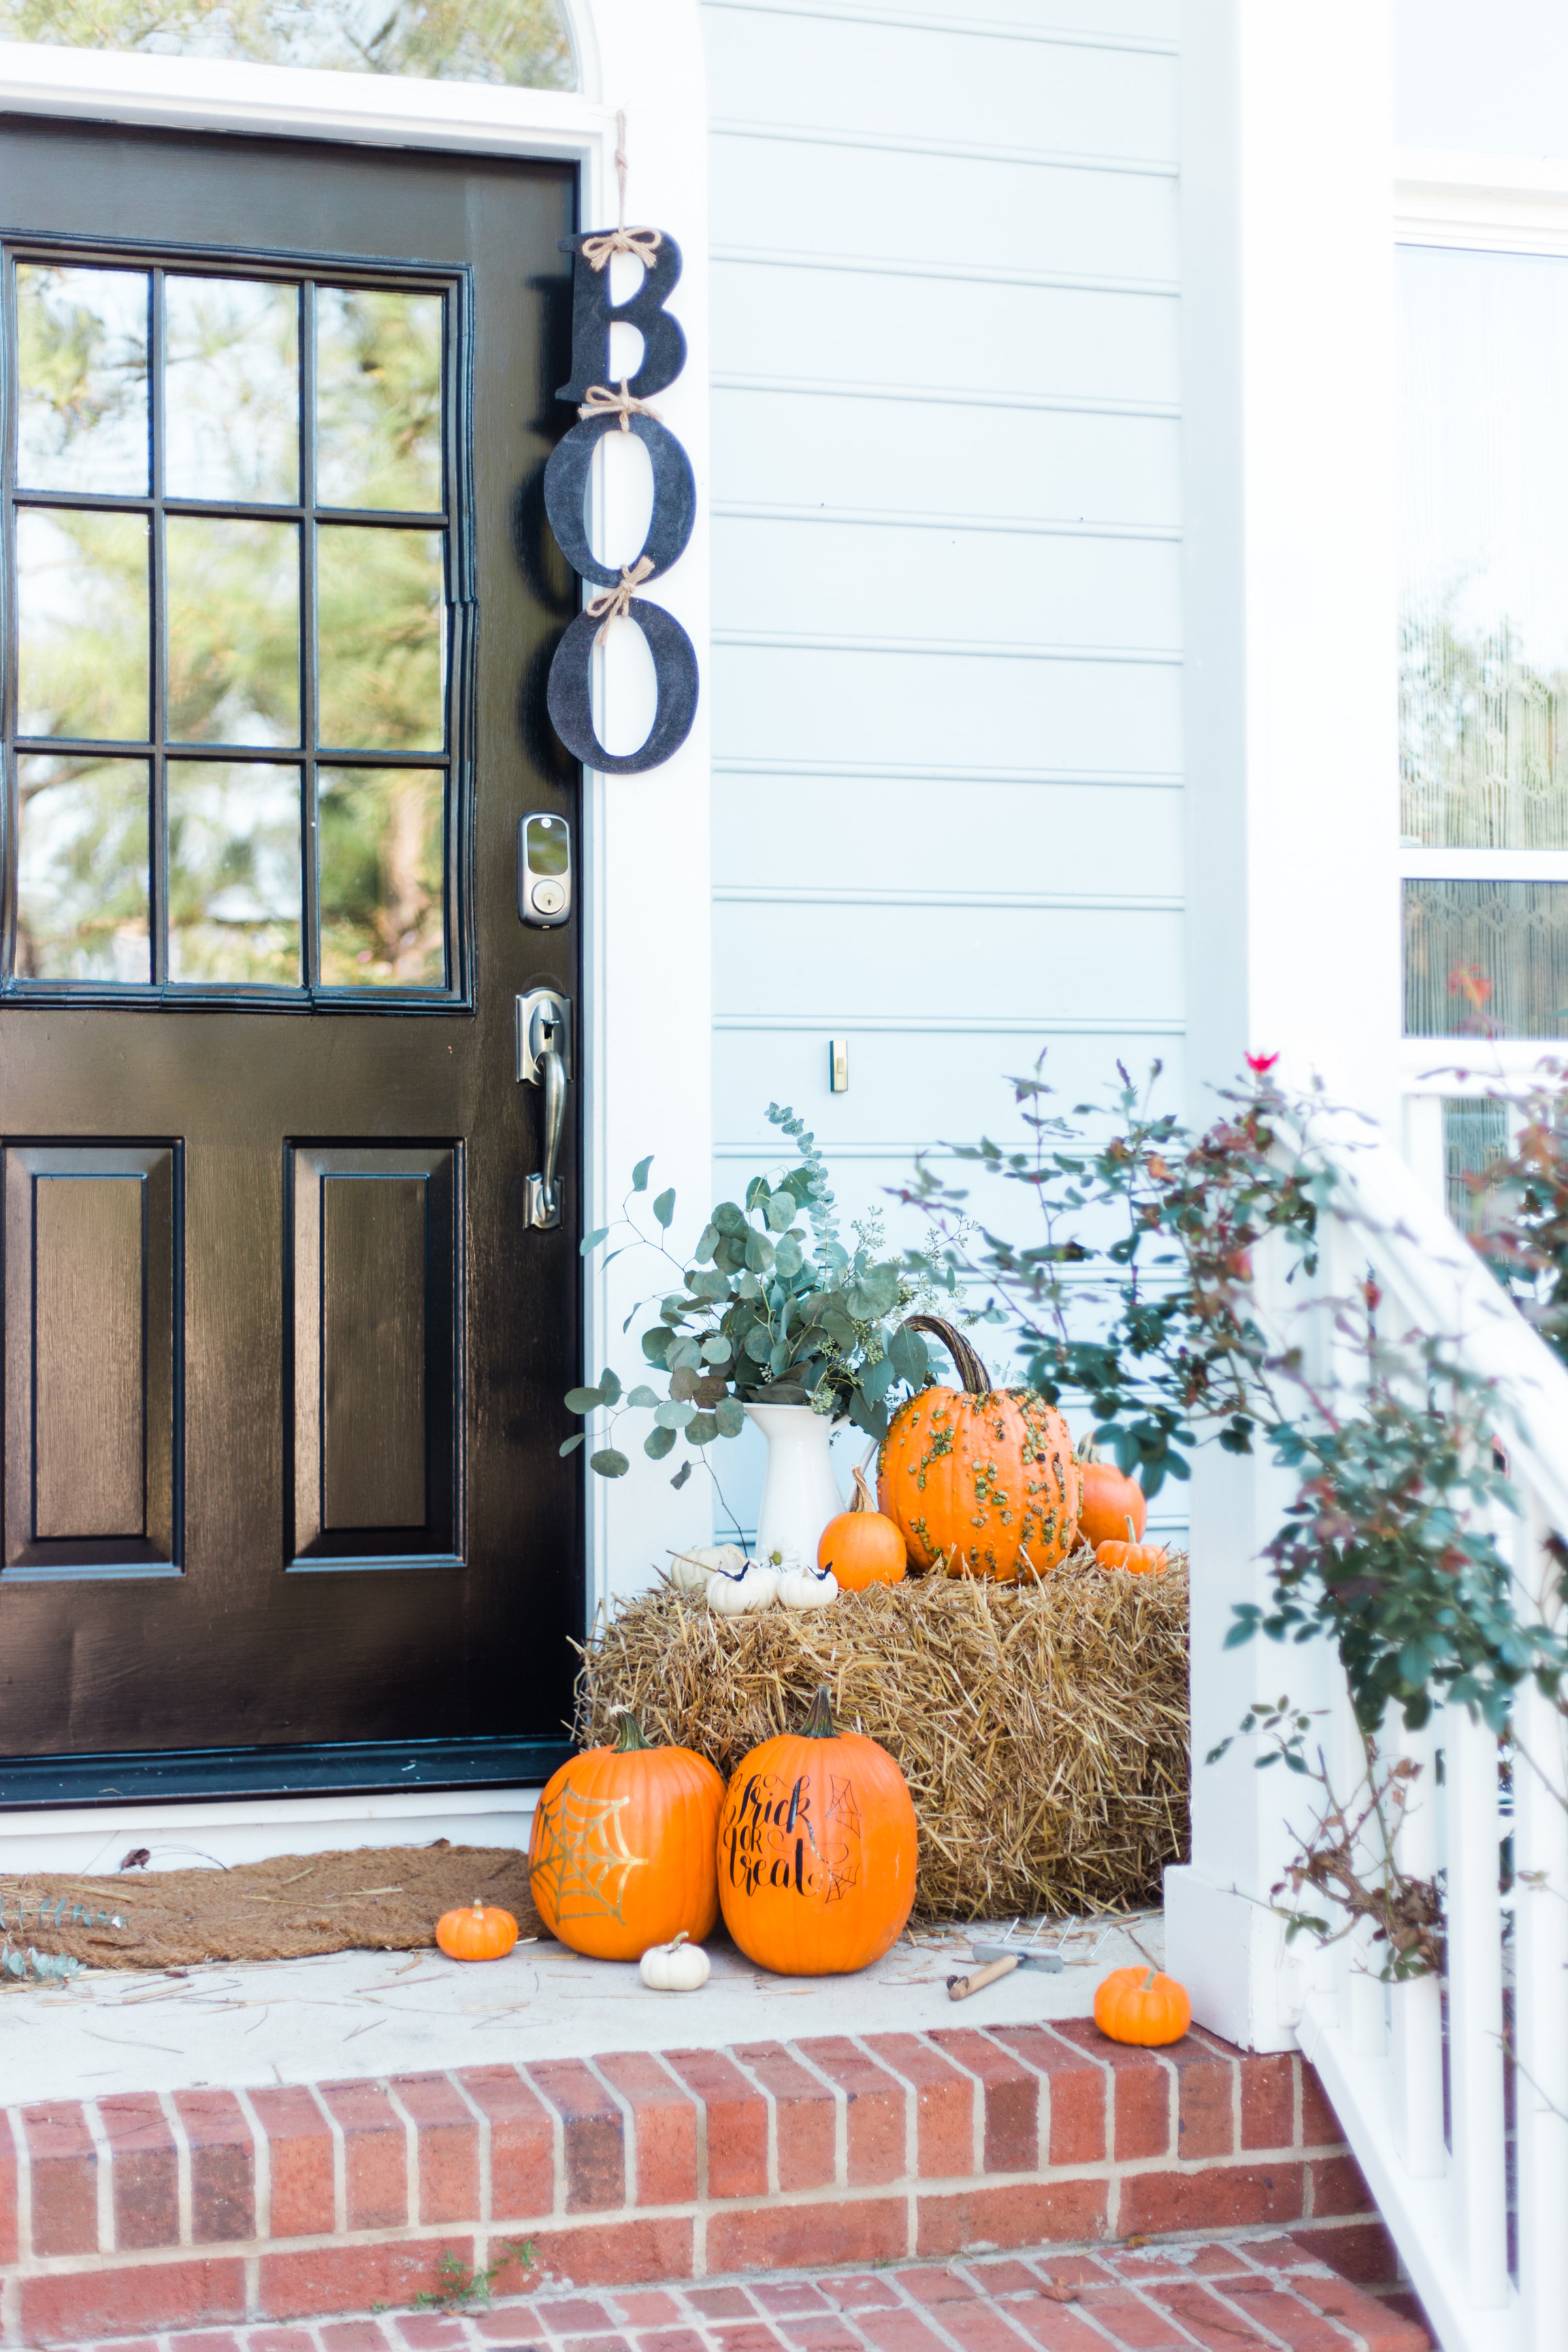 I'm revealing our Halloween Front Porch for Fall and details about how to decorate your own! Click through for the details. | glitterinc.com | @glitterinc